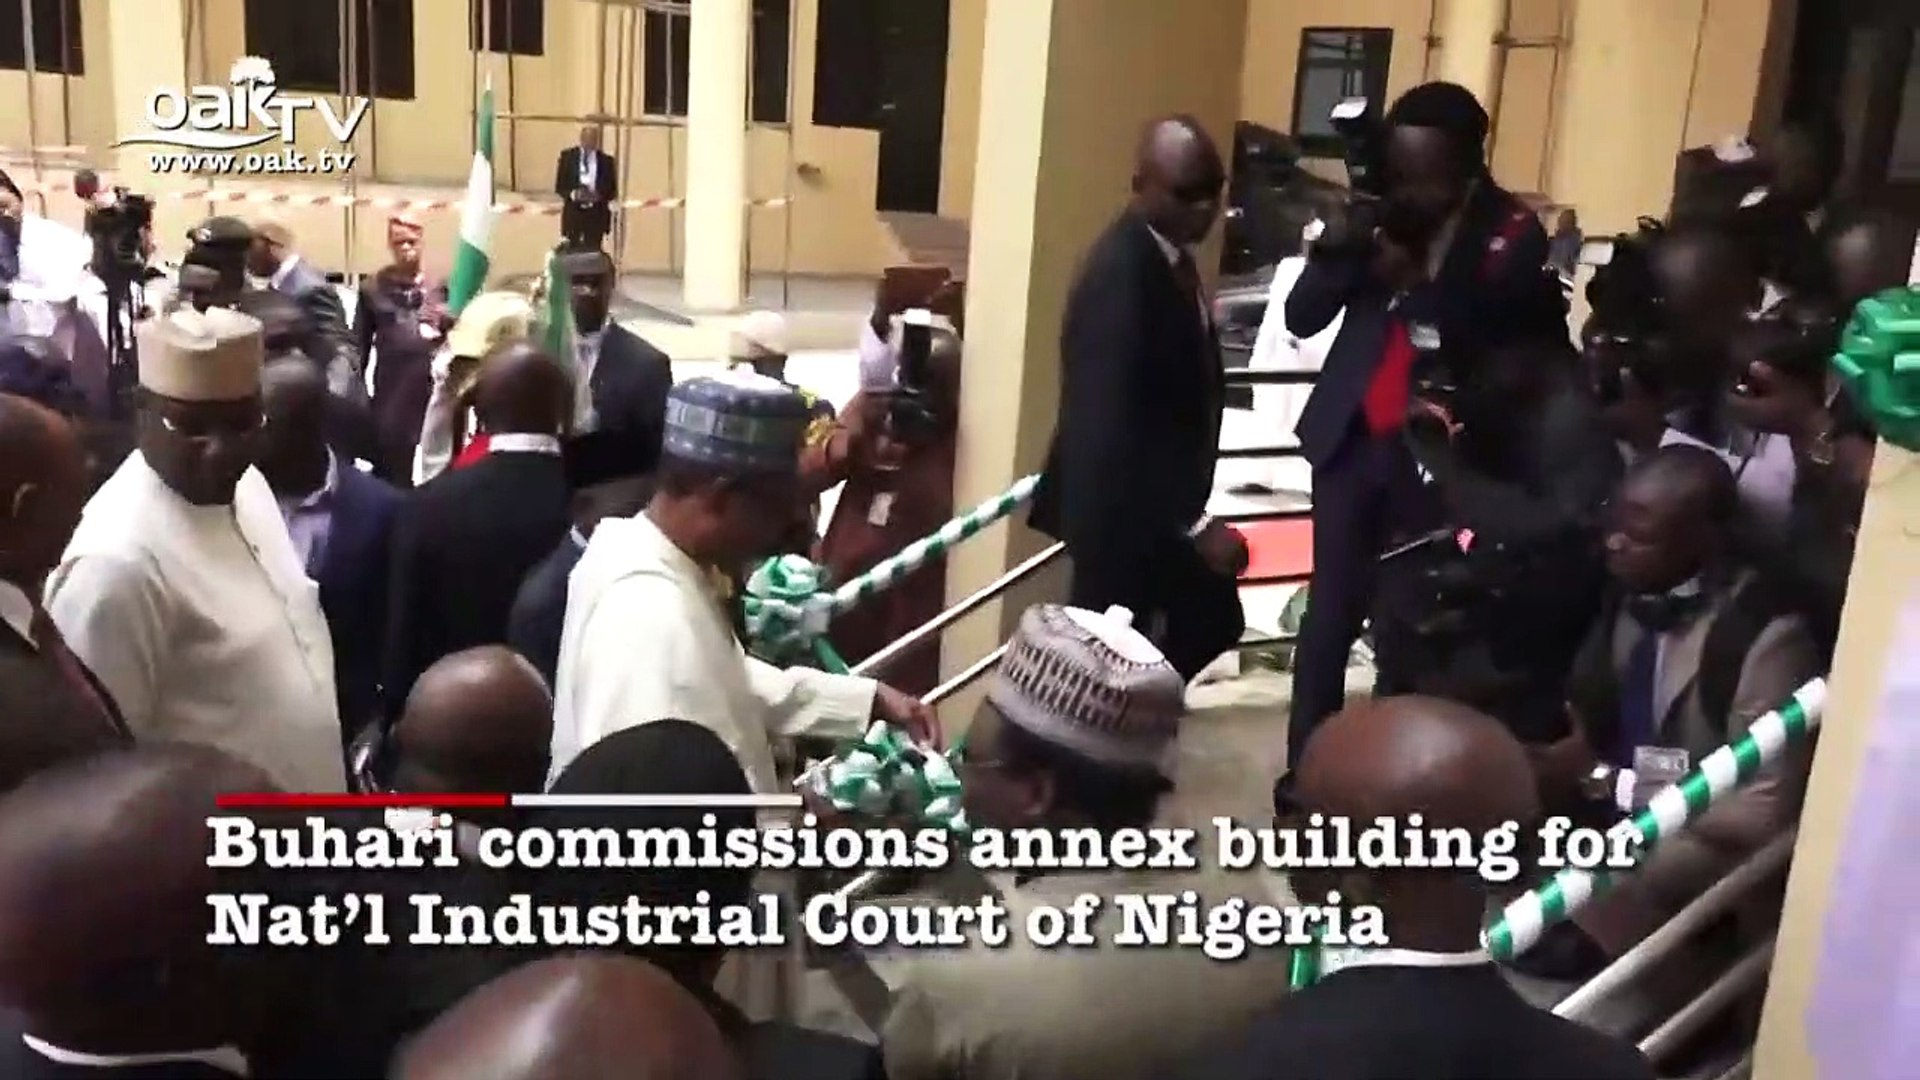 Buhari commissions annex building for Nat'l Industrial Court of Nigeria